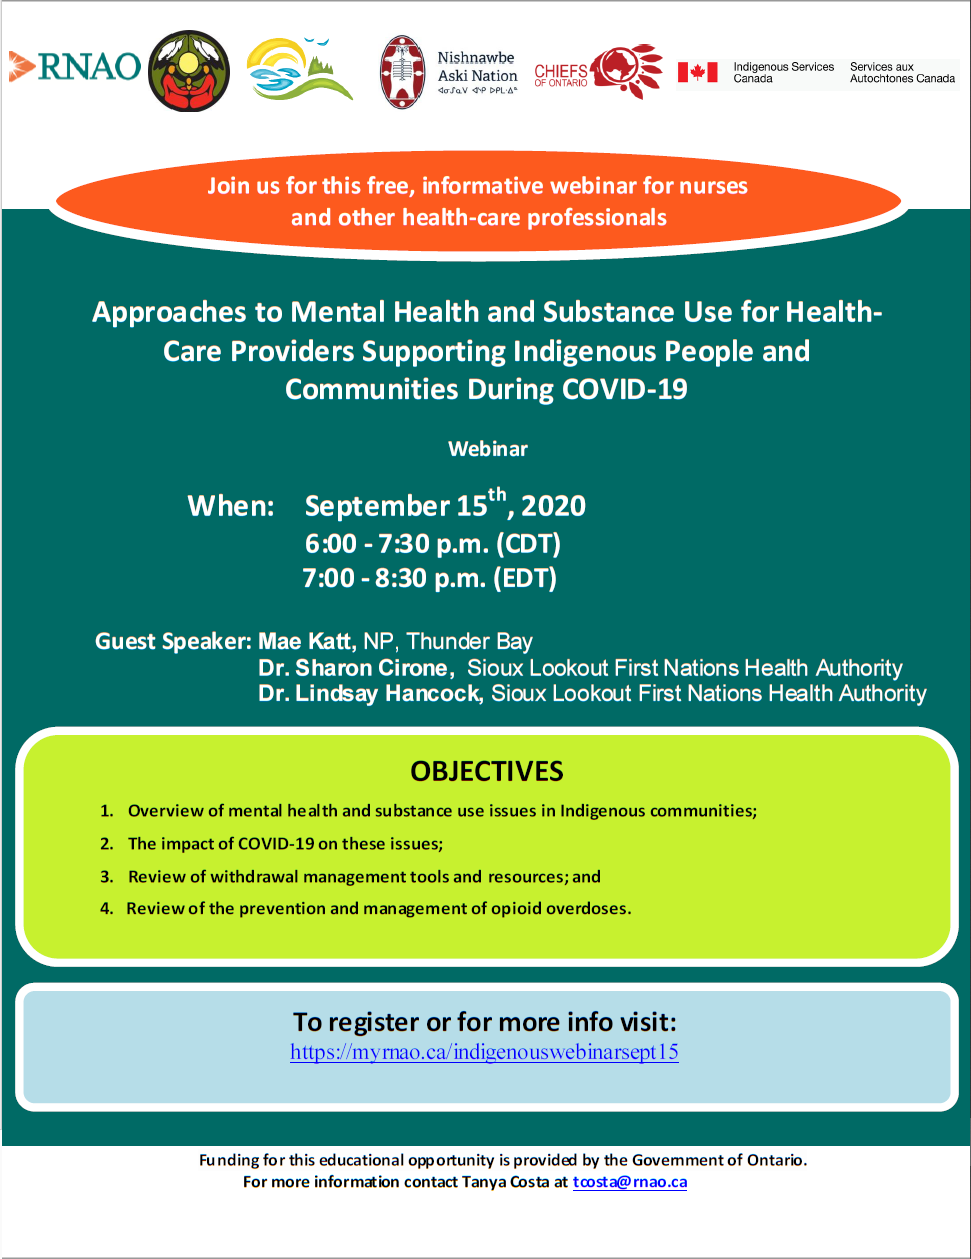 Flyer for Webinar: Approaches to Mental Health and Substance Use for Health-Care Providers Supporting Indigenous People and Communities During COVID-19